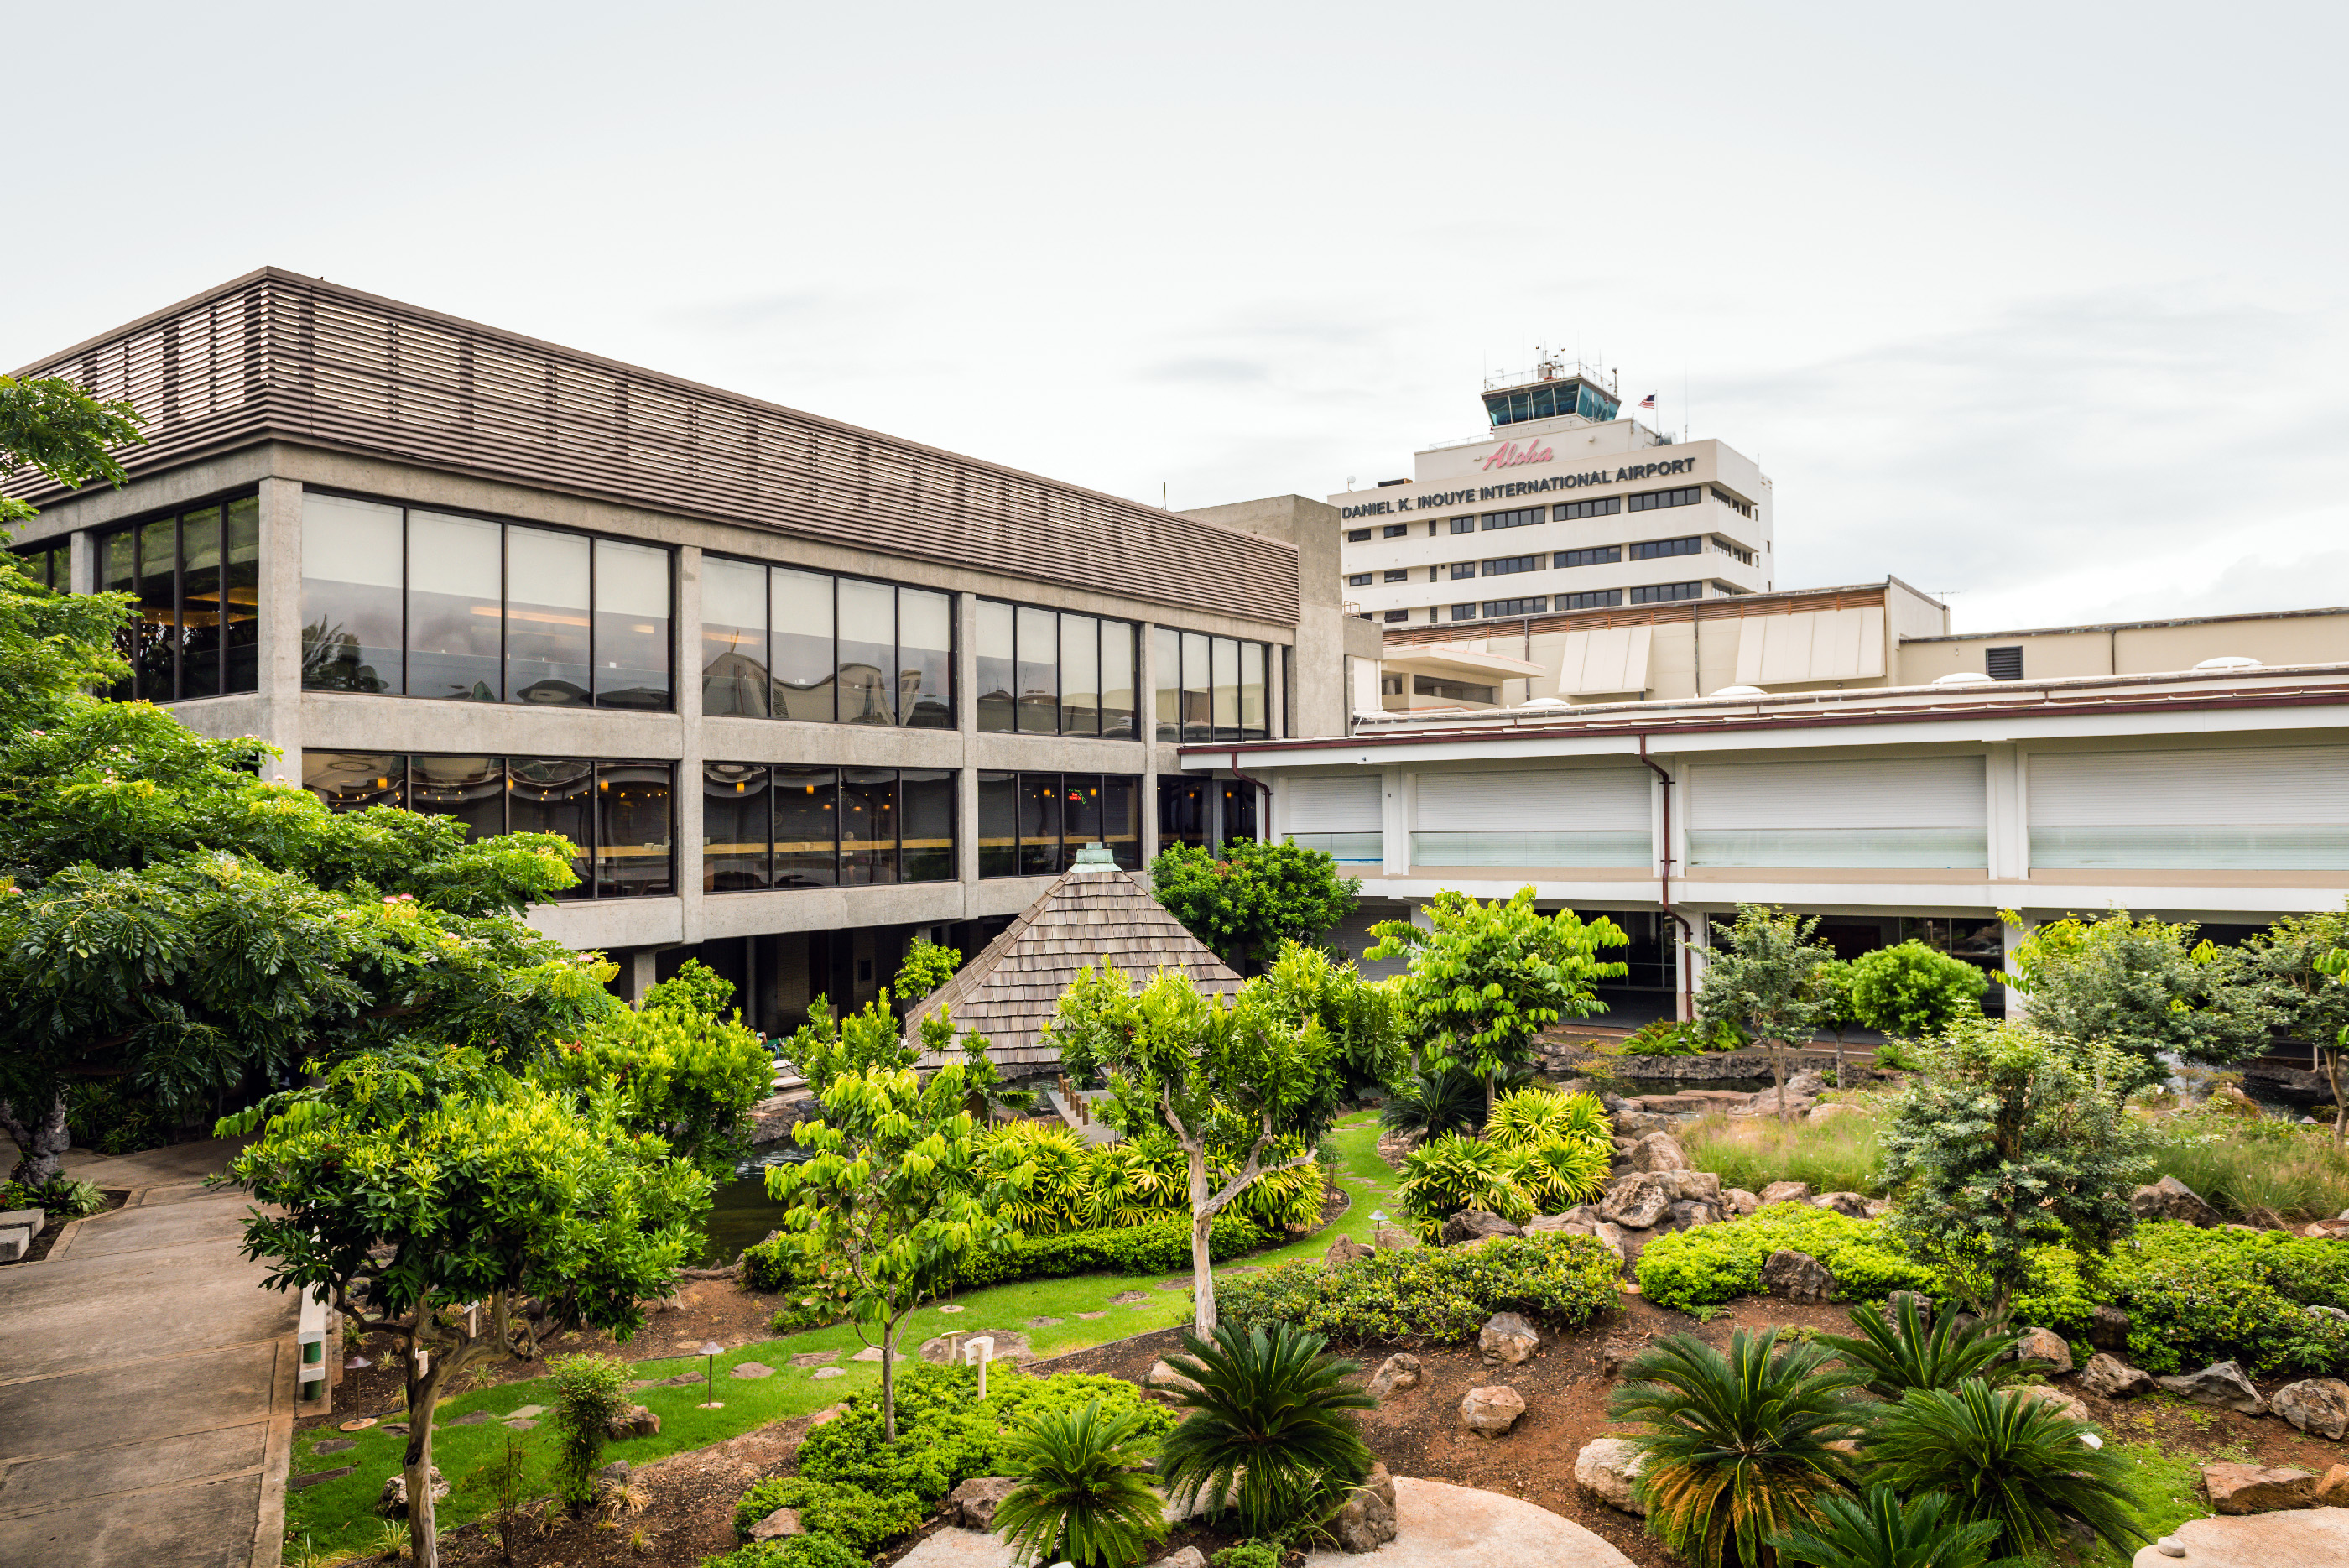 Cultural gardens at Daniel K. Inouye International Airport show Asian influence on Hawaiian culture, August 26, 2018.